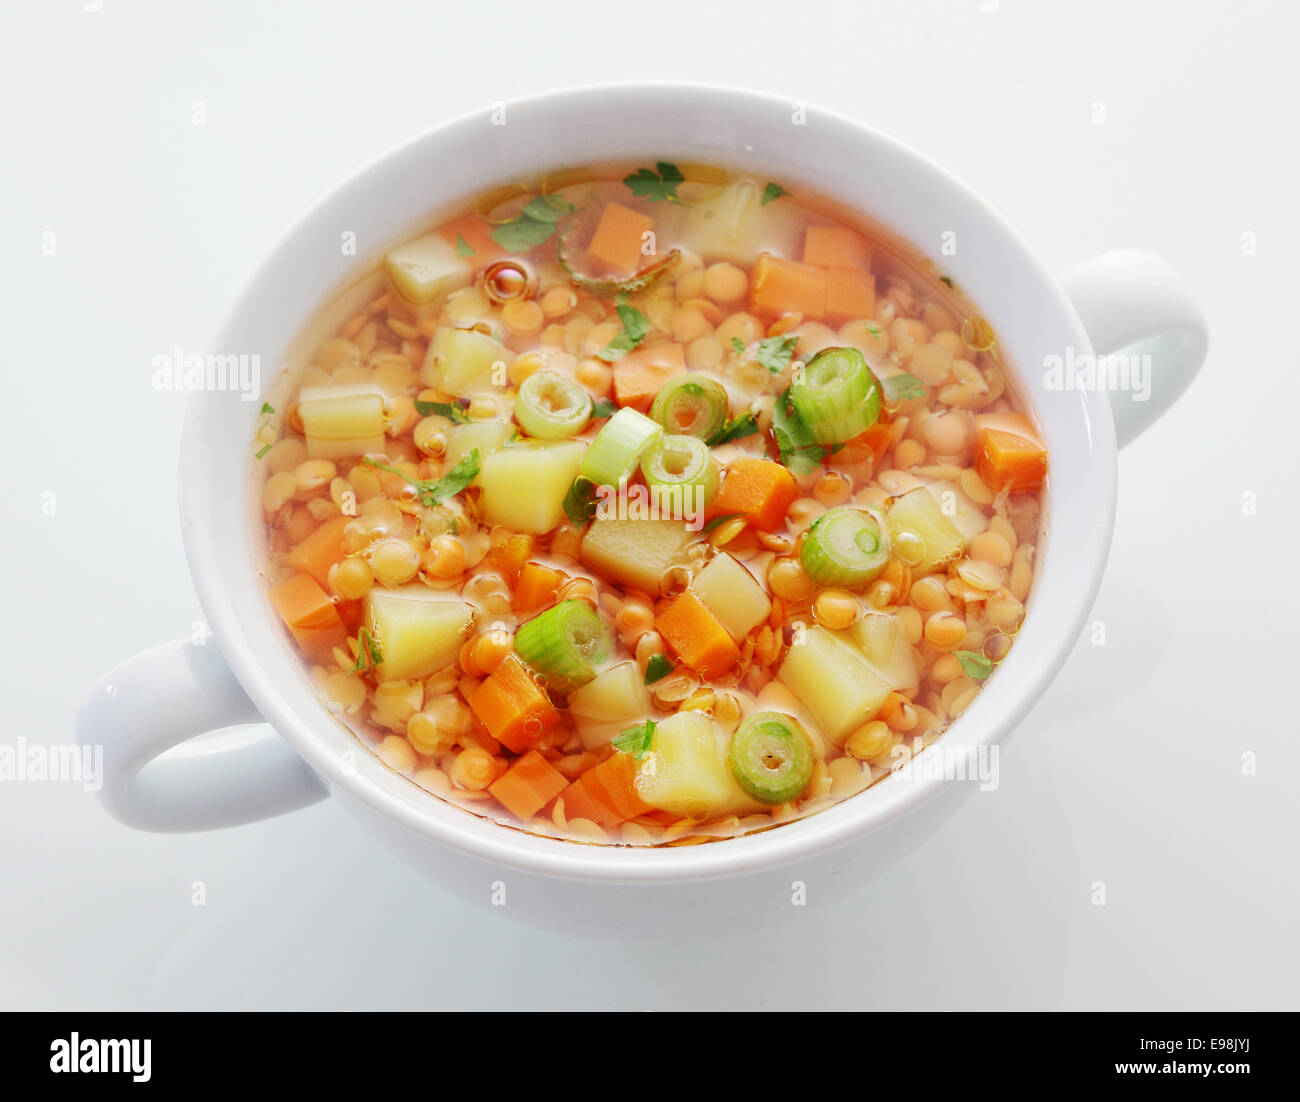 Wholesome bowl of lentil, carrot and leek soup rich in protein and dietary fiber, high angle view on white - Stock Image